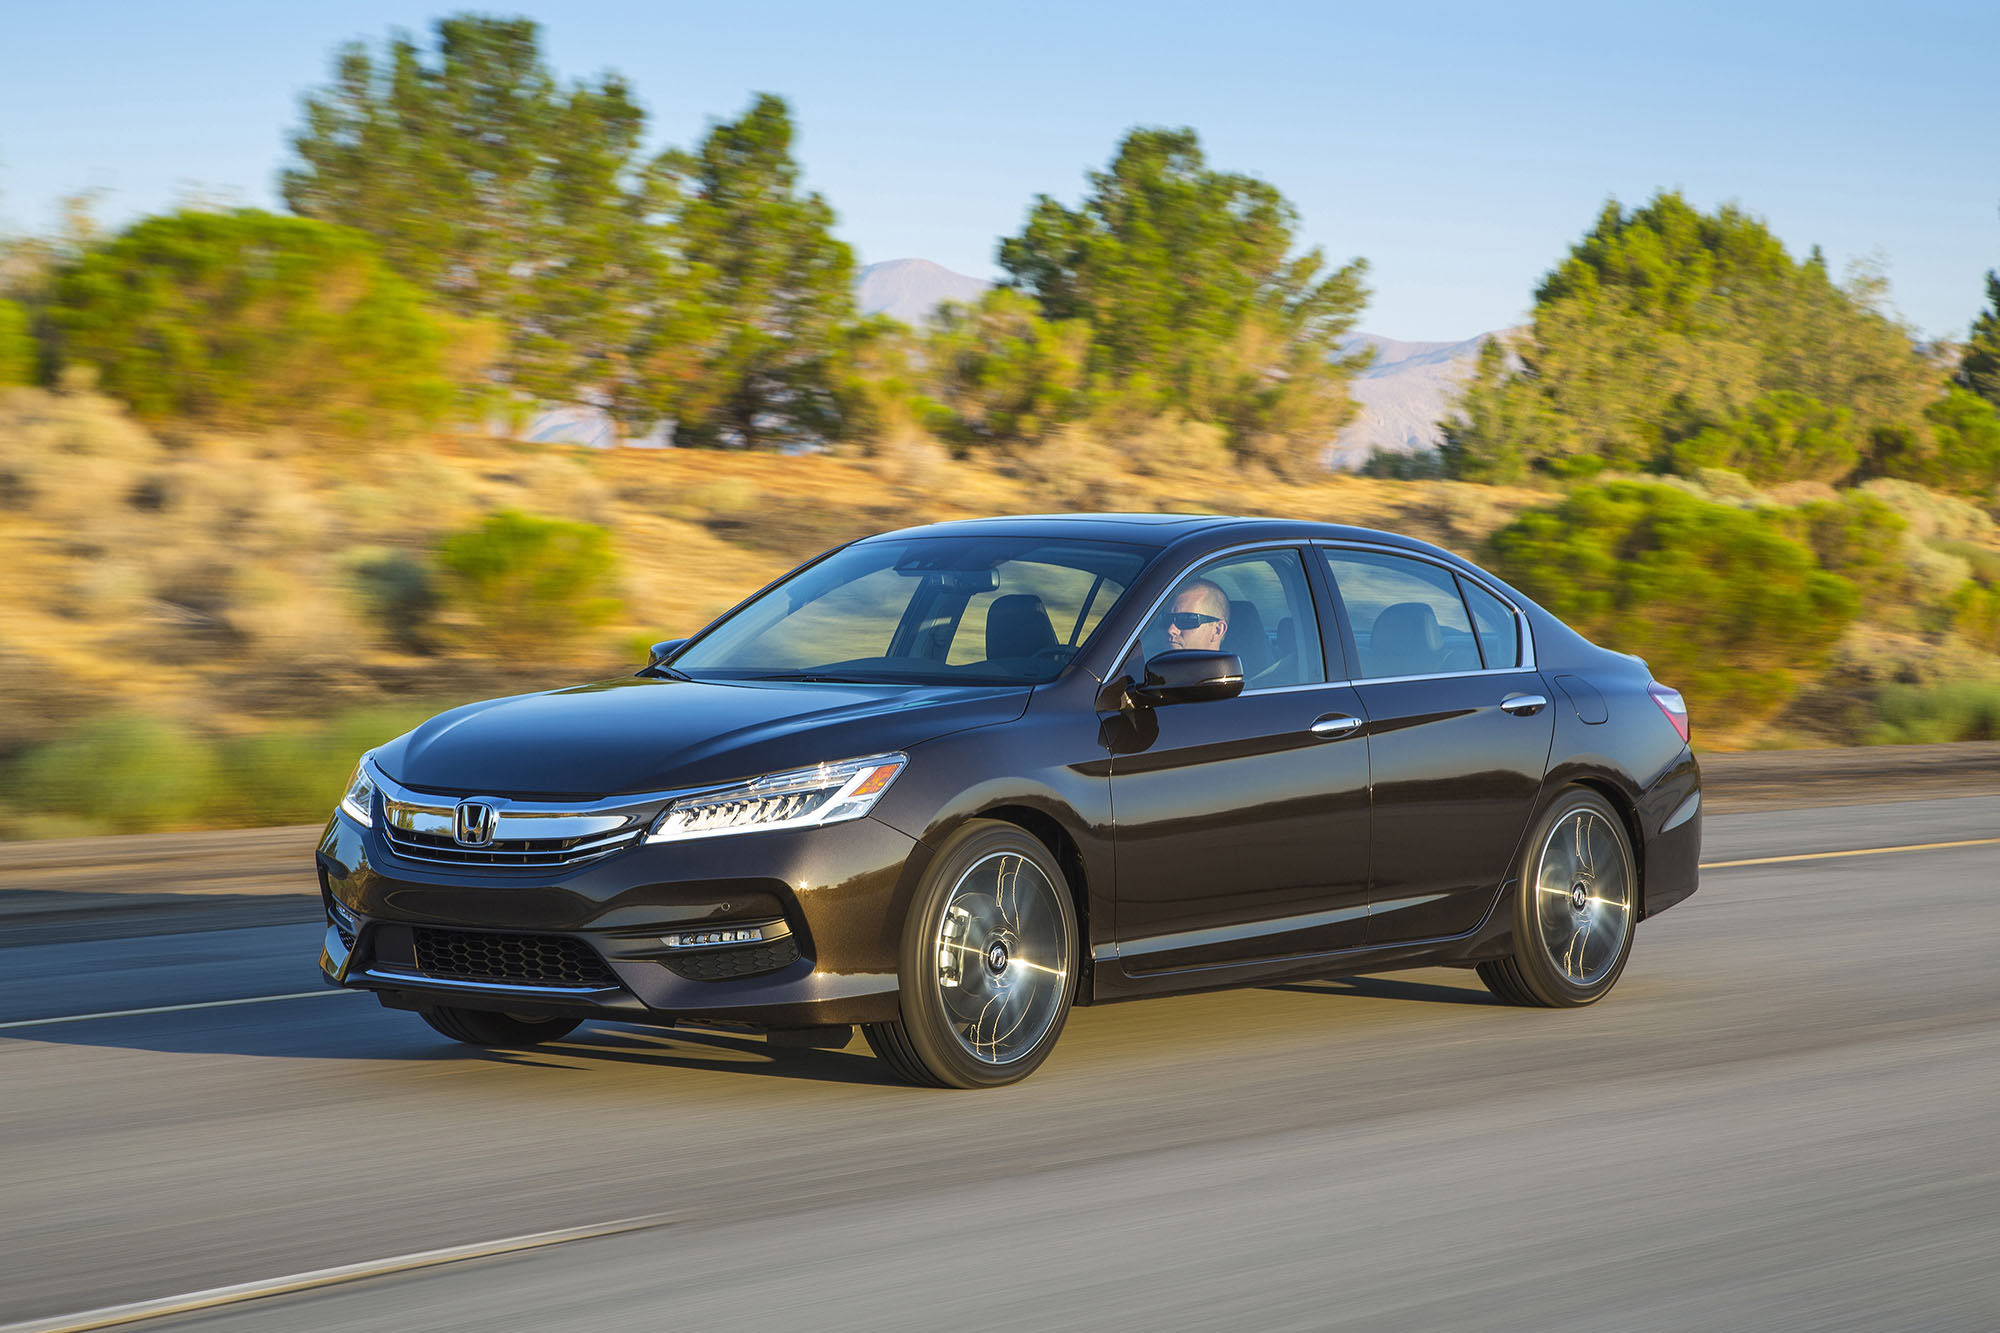 2016 honda accord us facelift detailed australian debut unclear photos 1 of 11. Black Bedroom Furniture Sets. Home Design Ideas